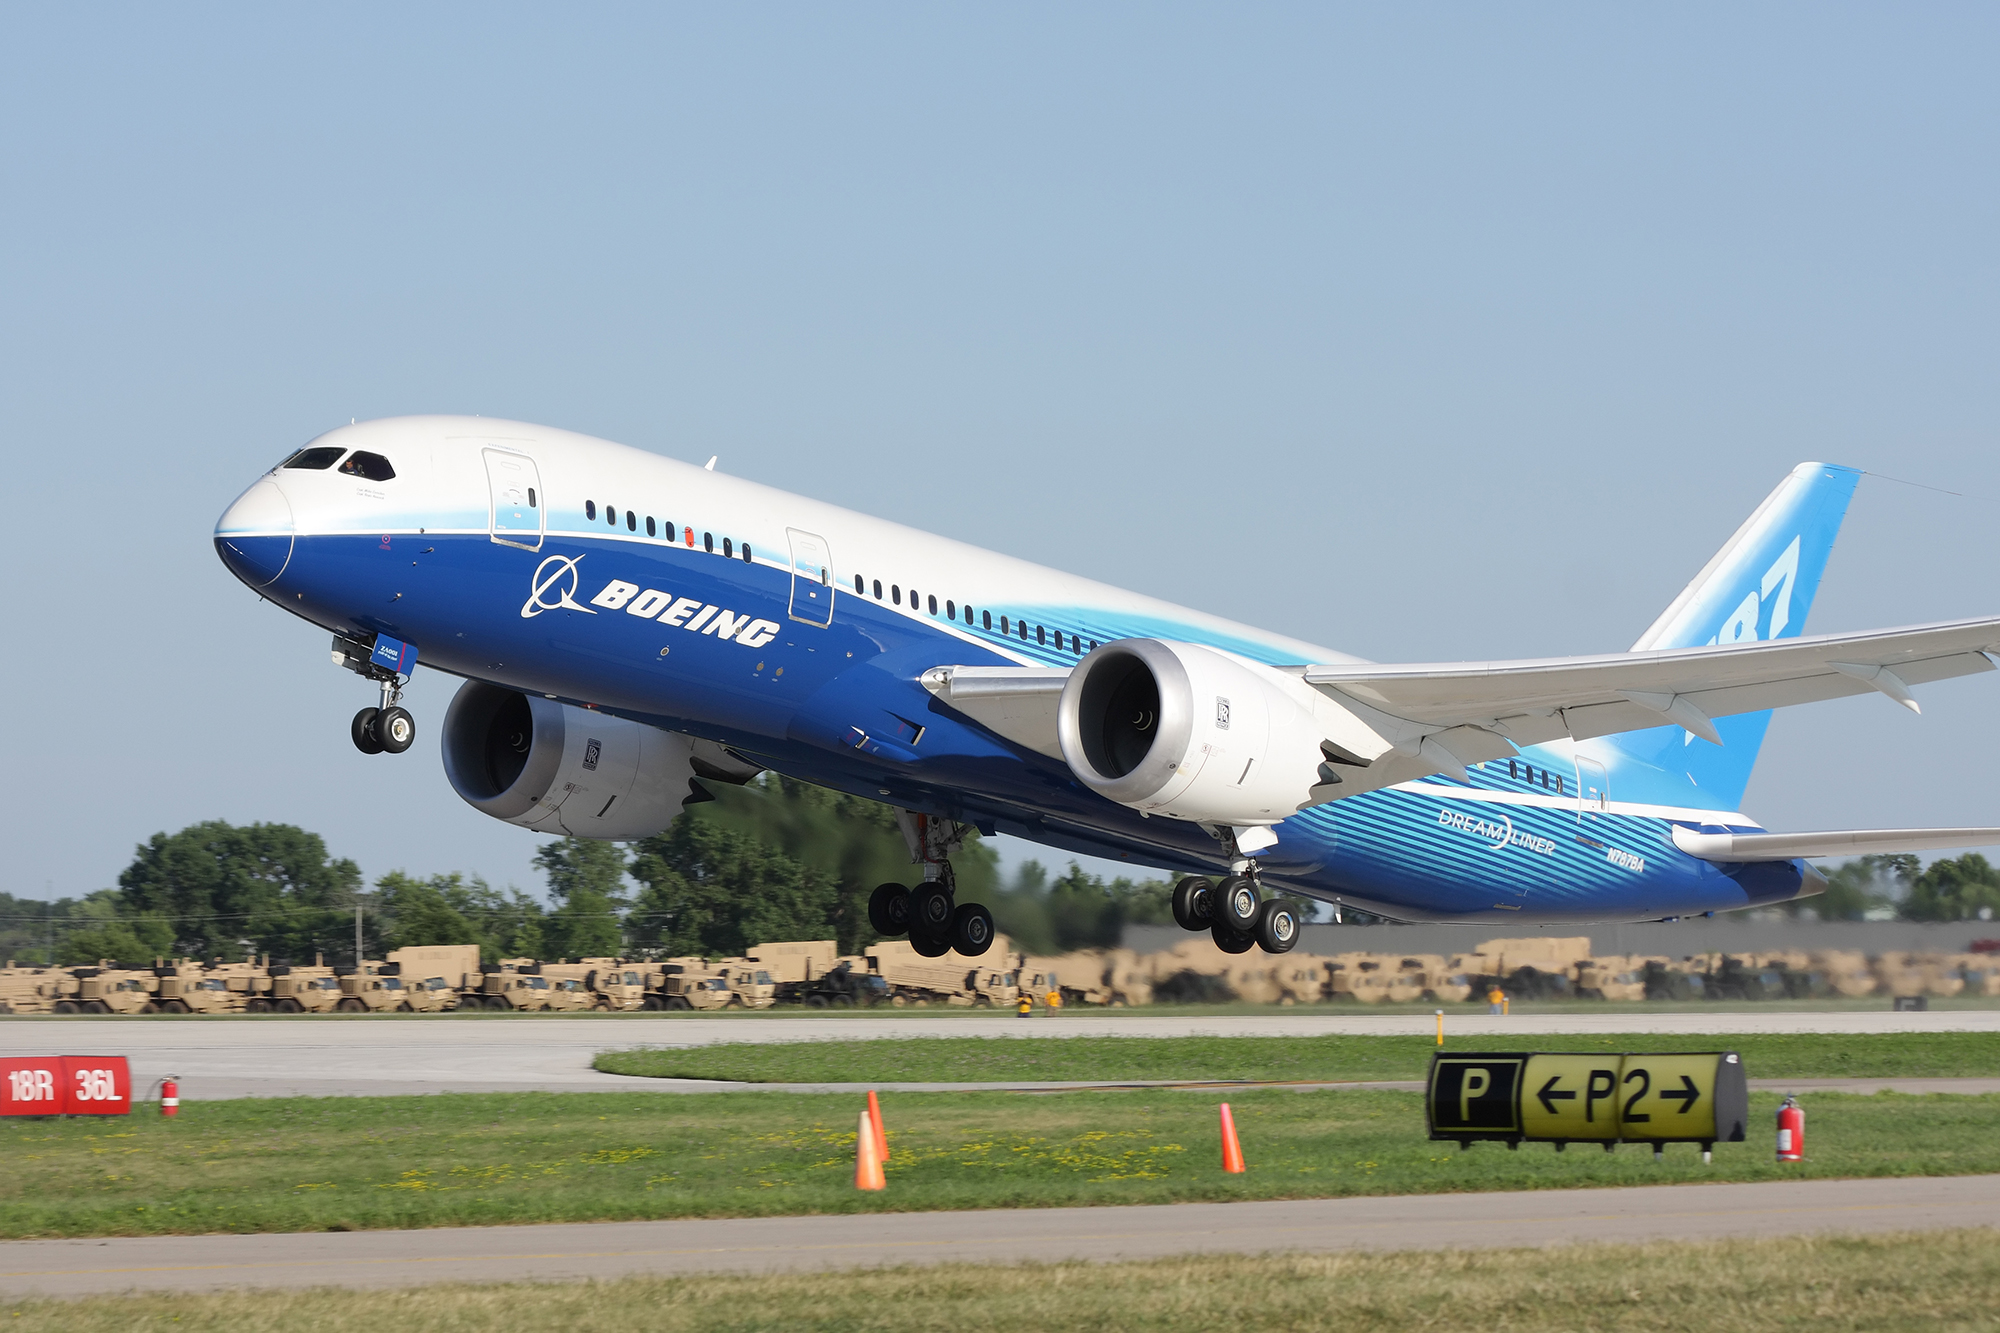 Boeing co ba stock is priced for a worst case scenario stock boeing co ba stock is priced for a worst case scenario stock market news us news buycottarizona Image collections